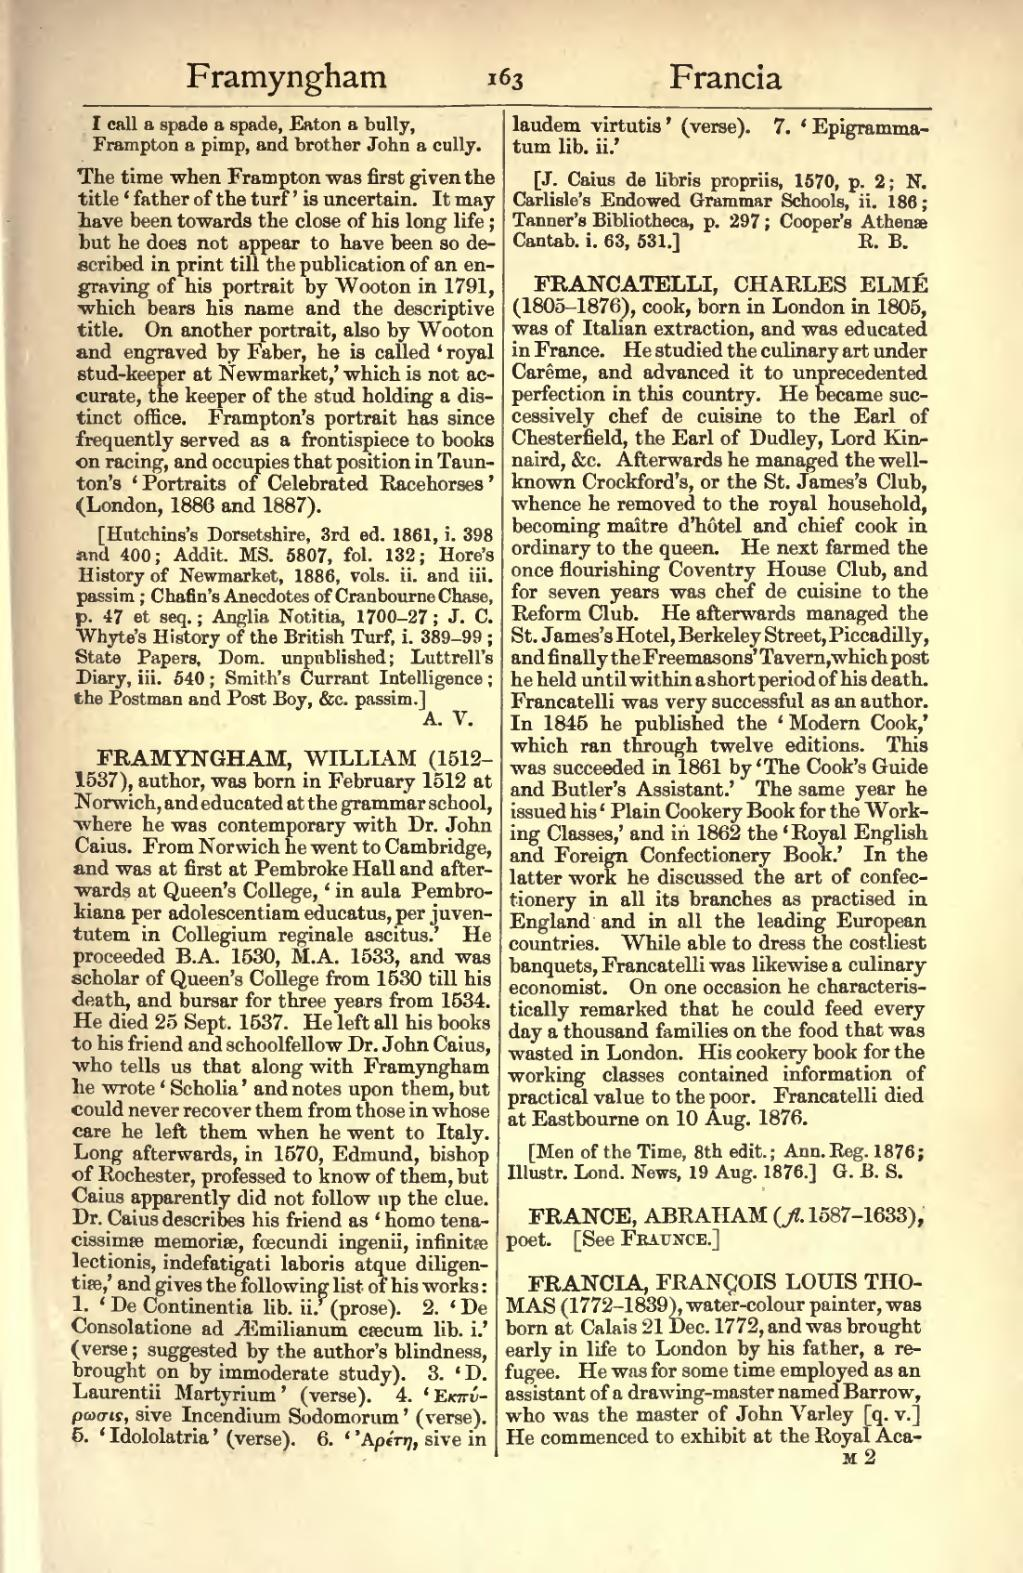 Francatelli's entry in: Dictionary of National Biography